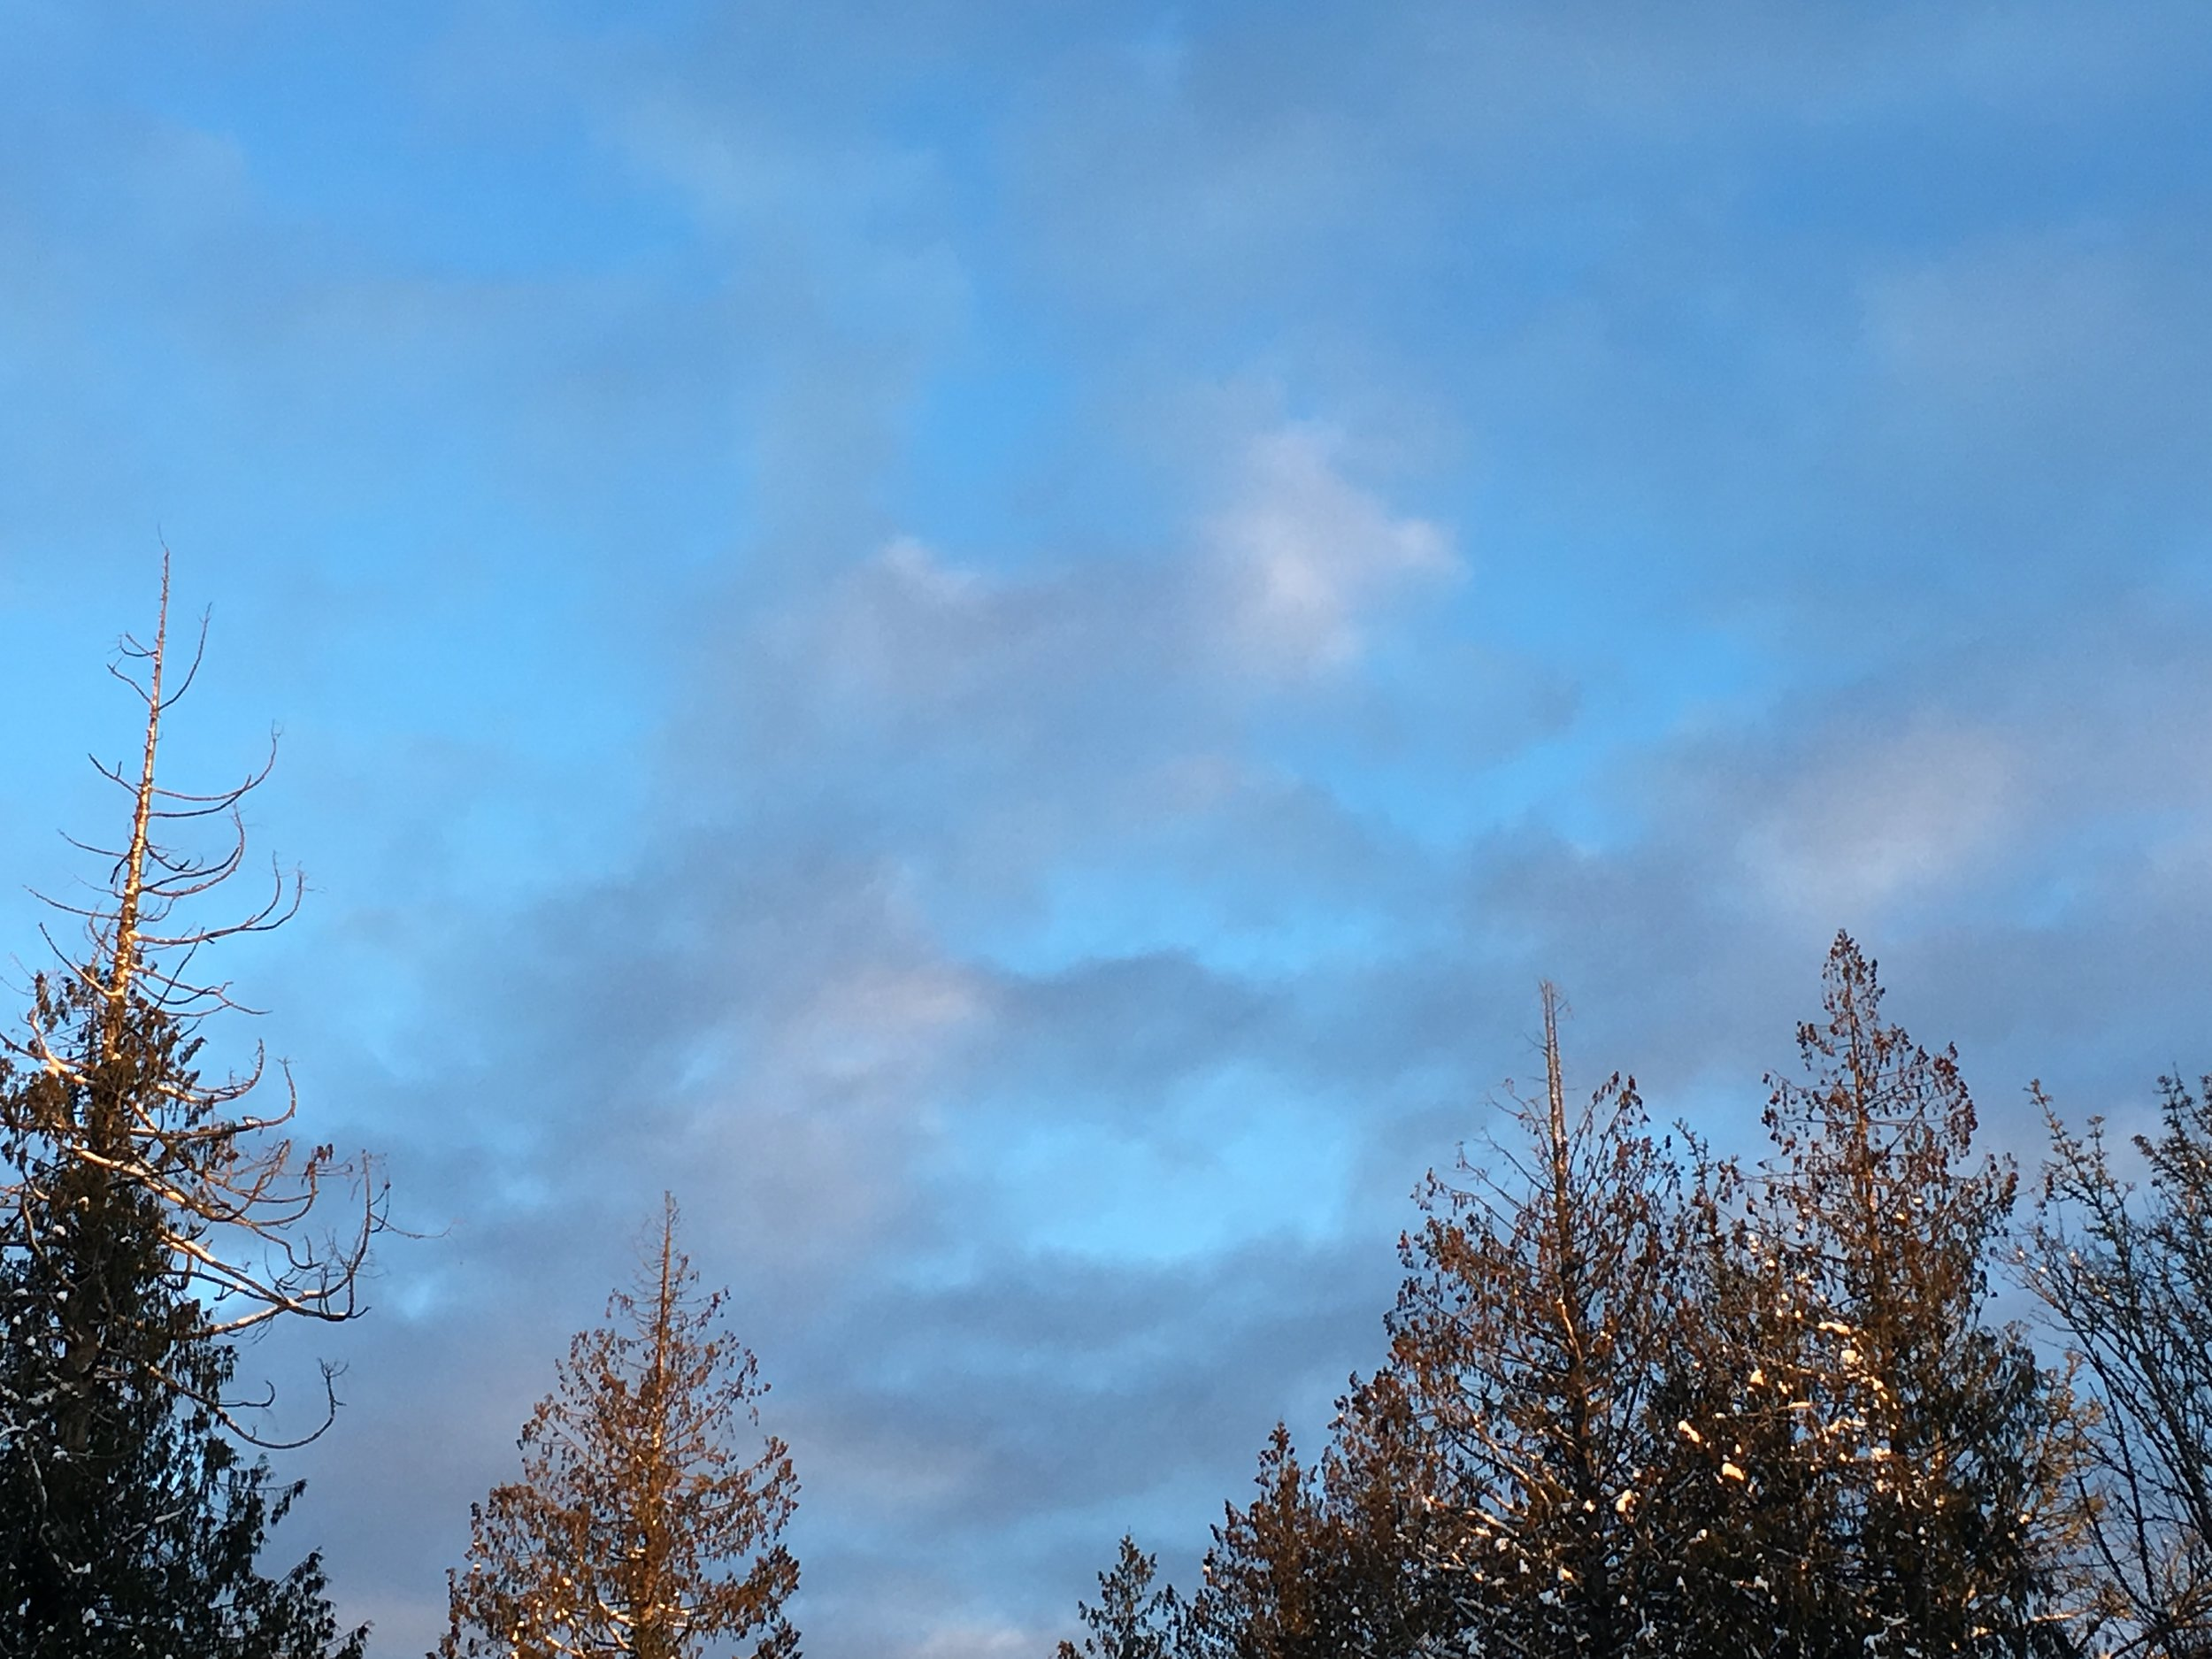 treetops and blue sky with light clouds